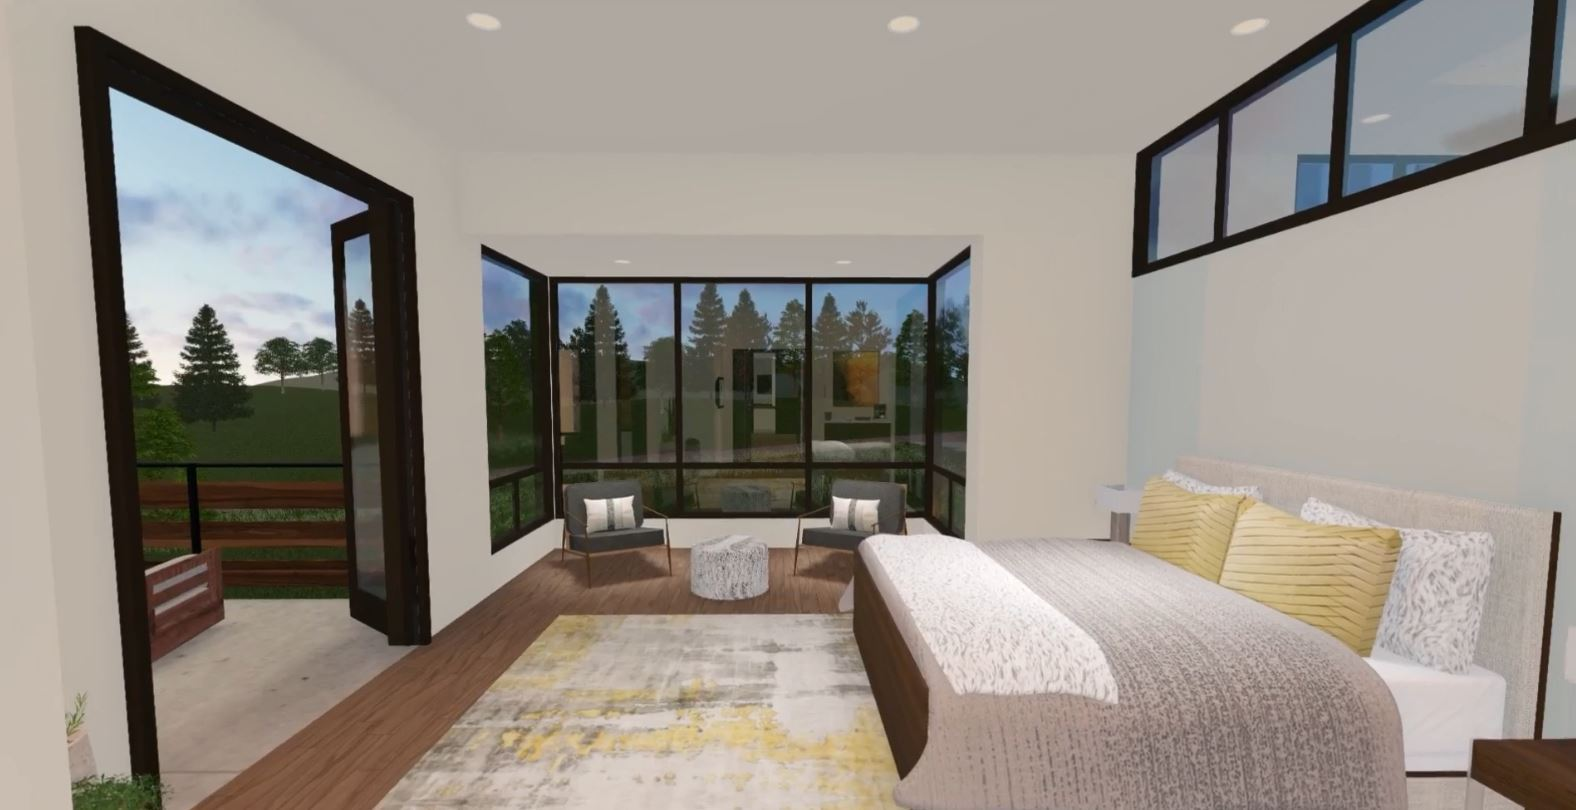 Bedroom featured in the Camelot (Finished Basement) By Galiant Homes in Colorado Springs, CO